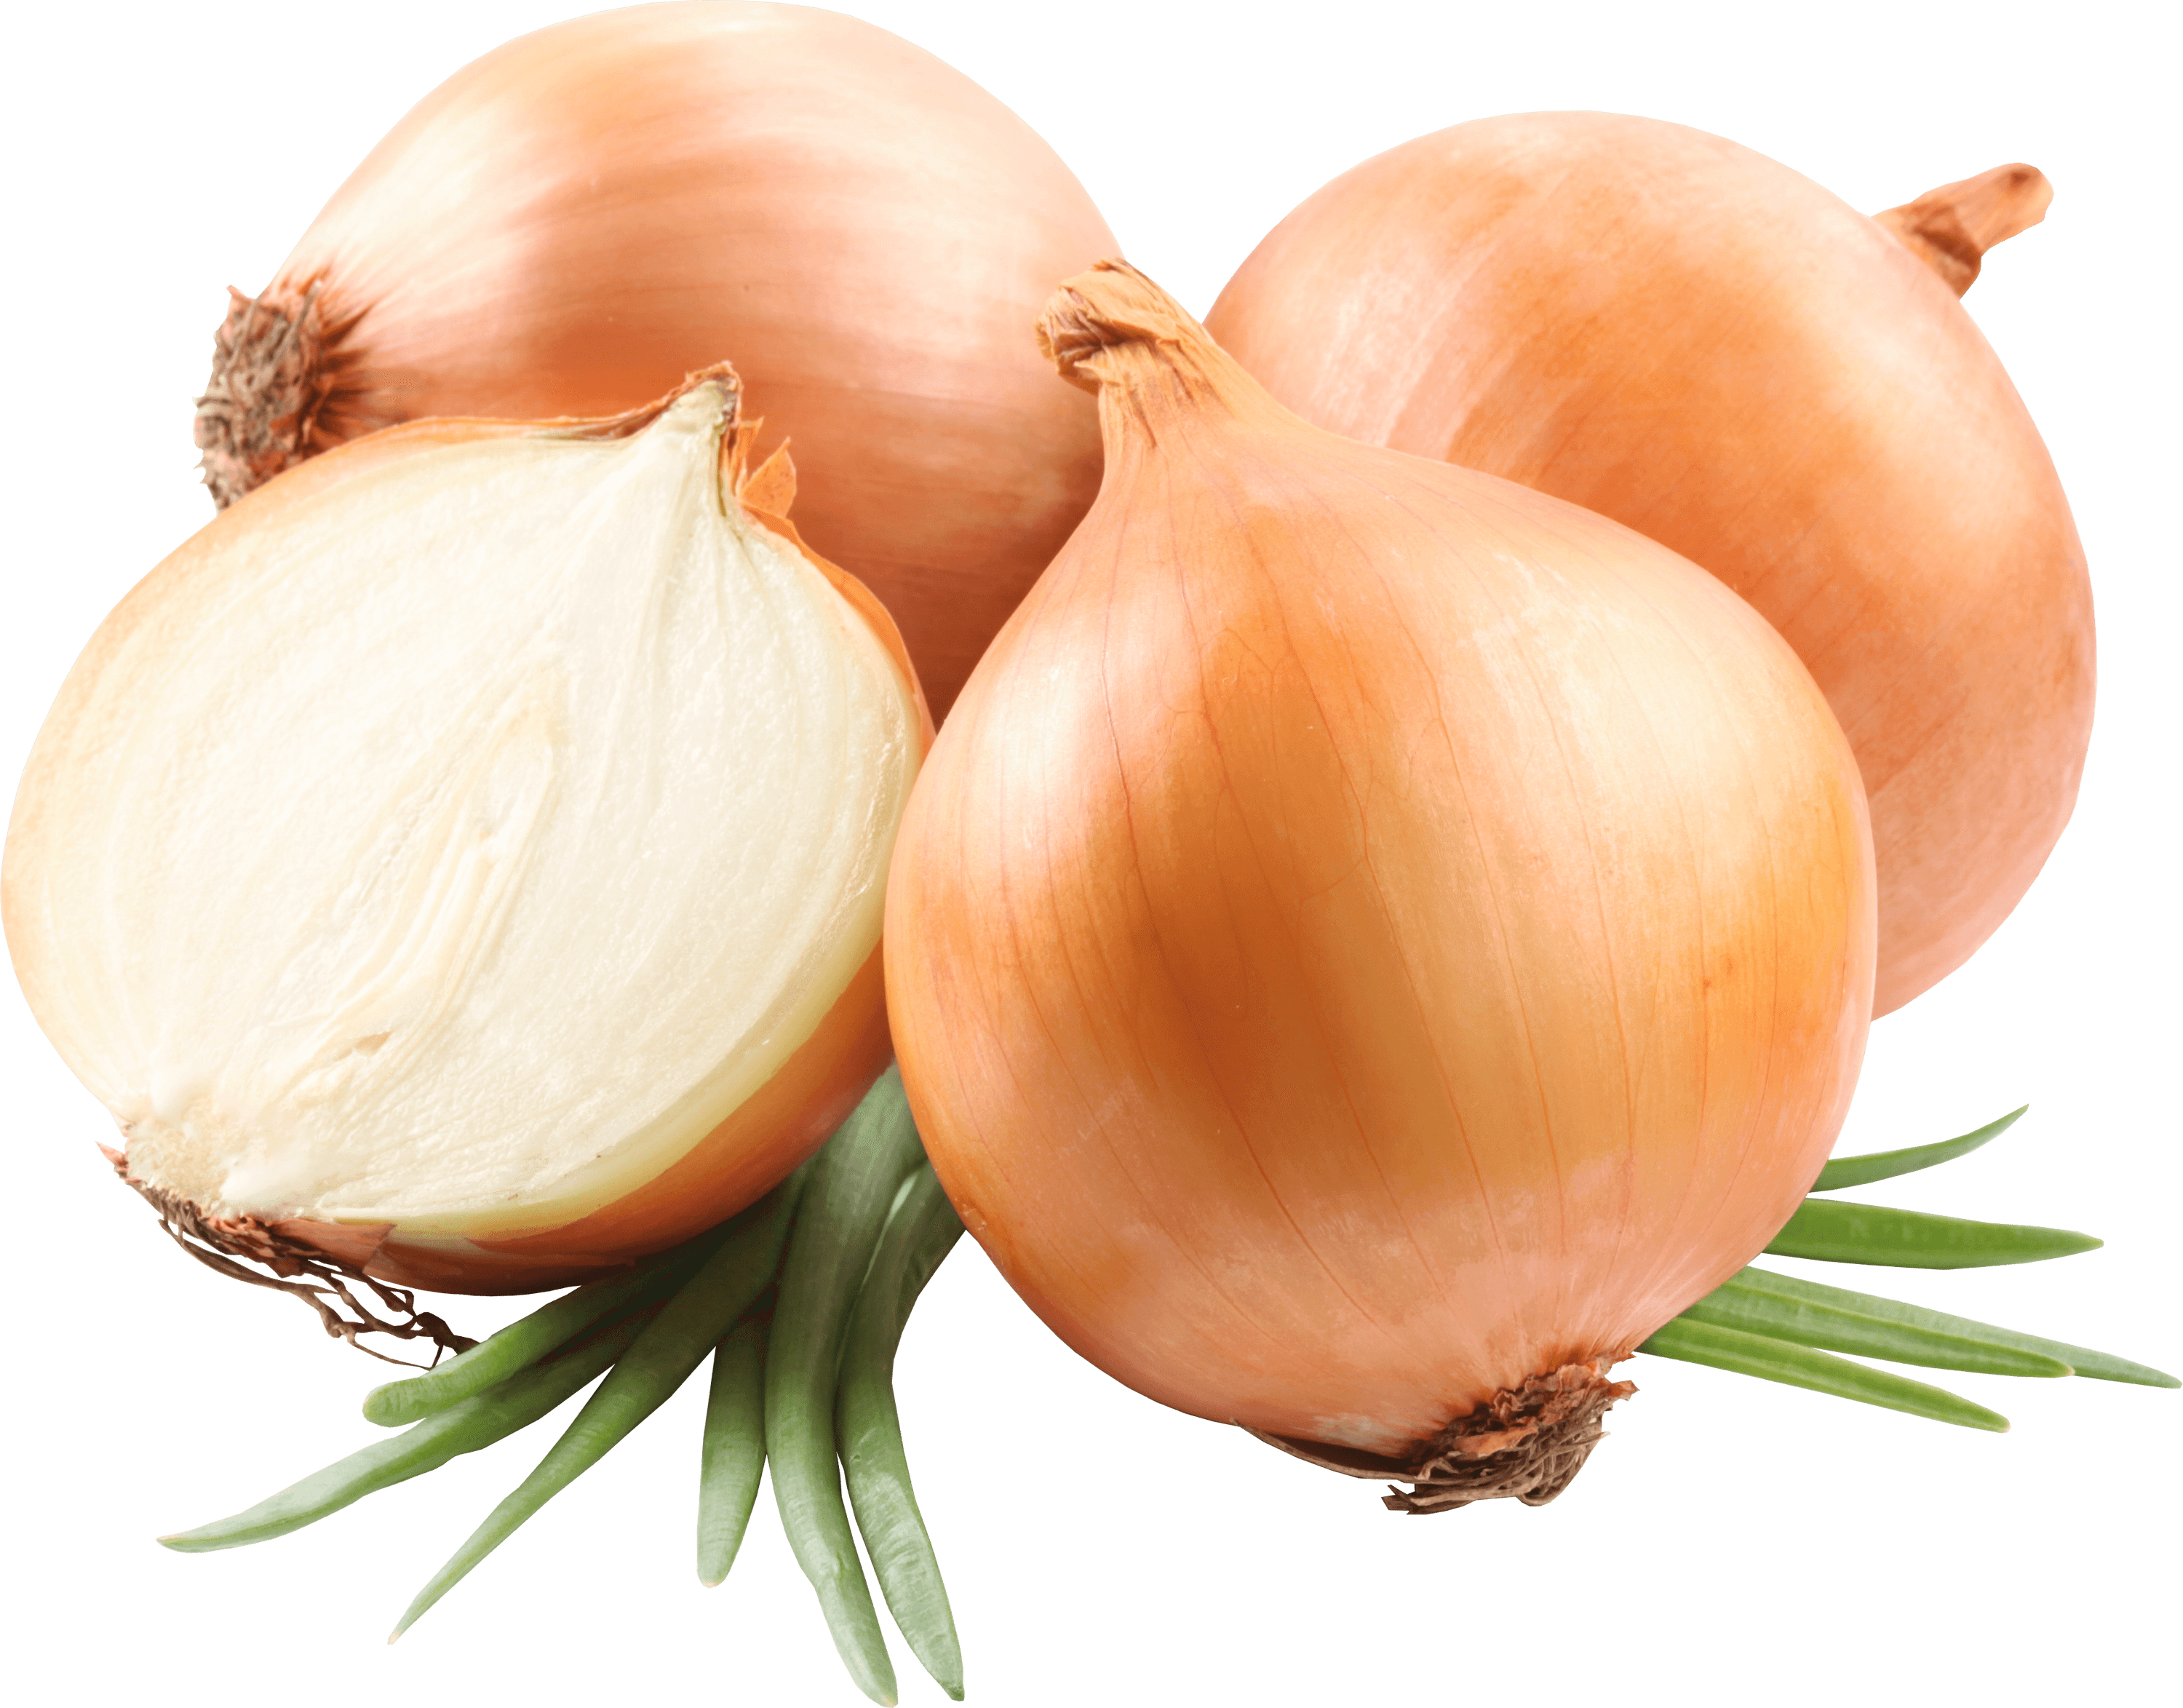 Transparent png stickpng a. Onion clipart red onion